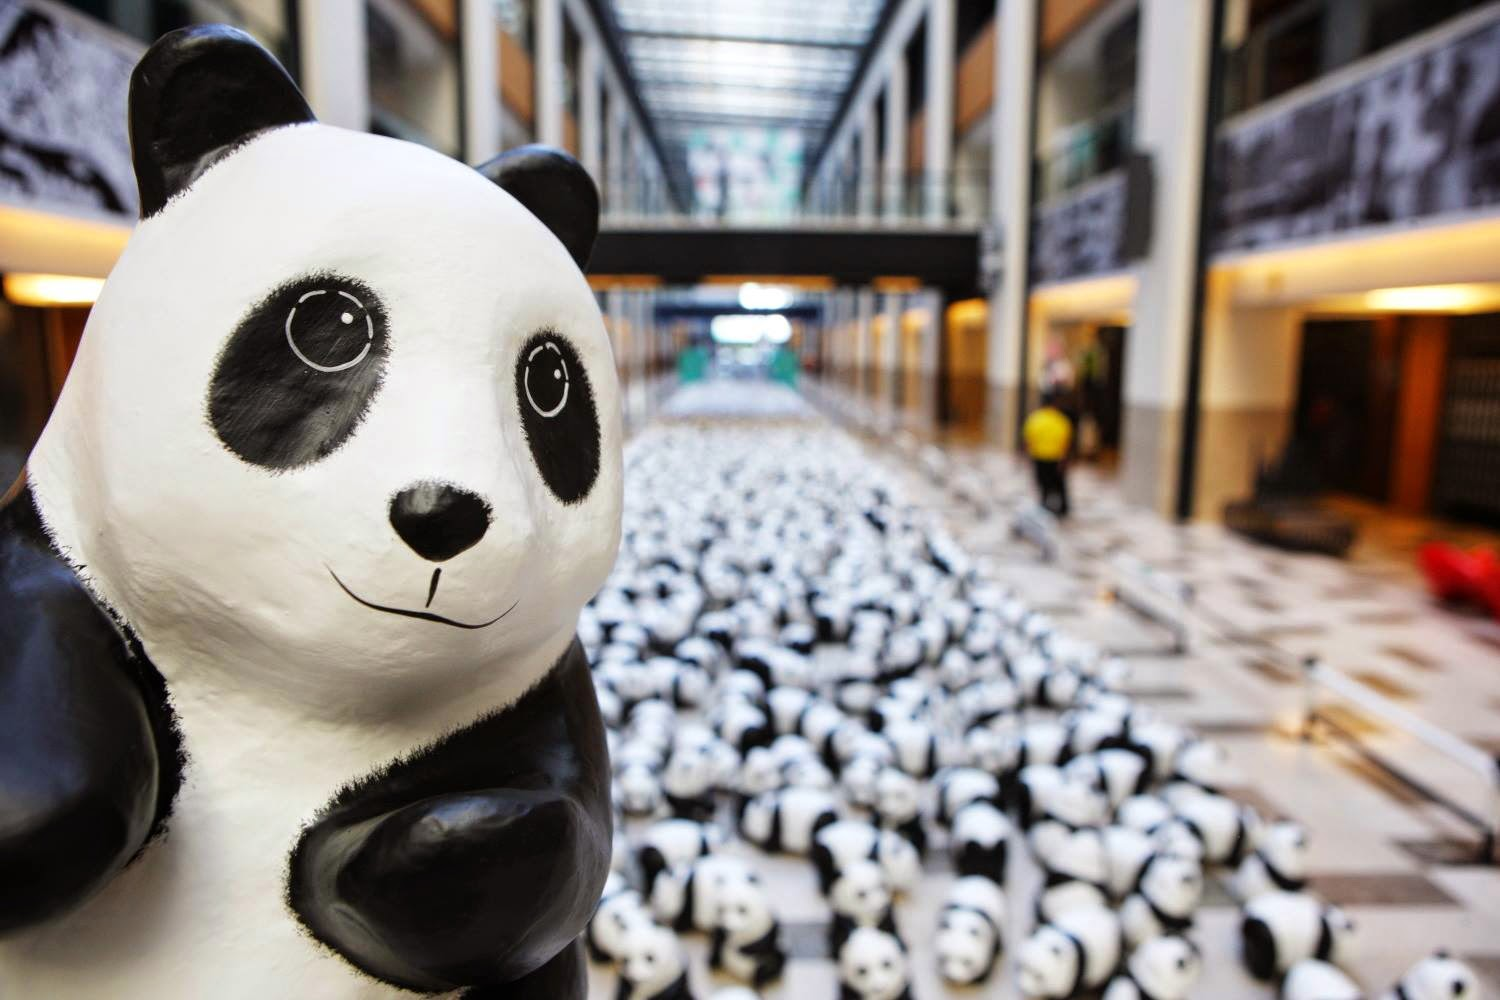 Go see and take photos with 1,600 Pandas at Publika